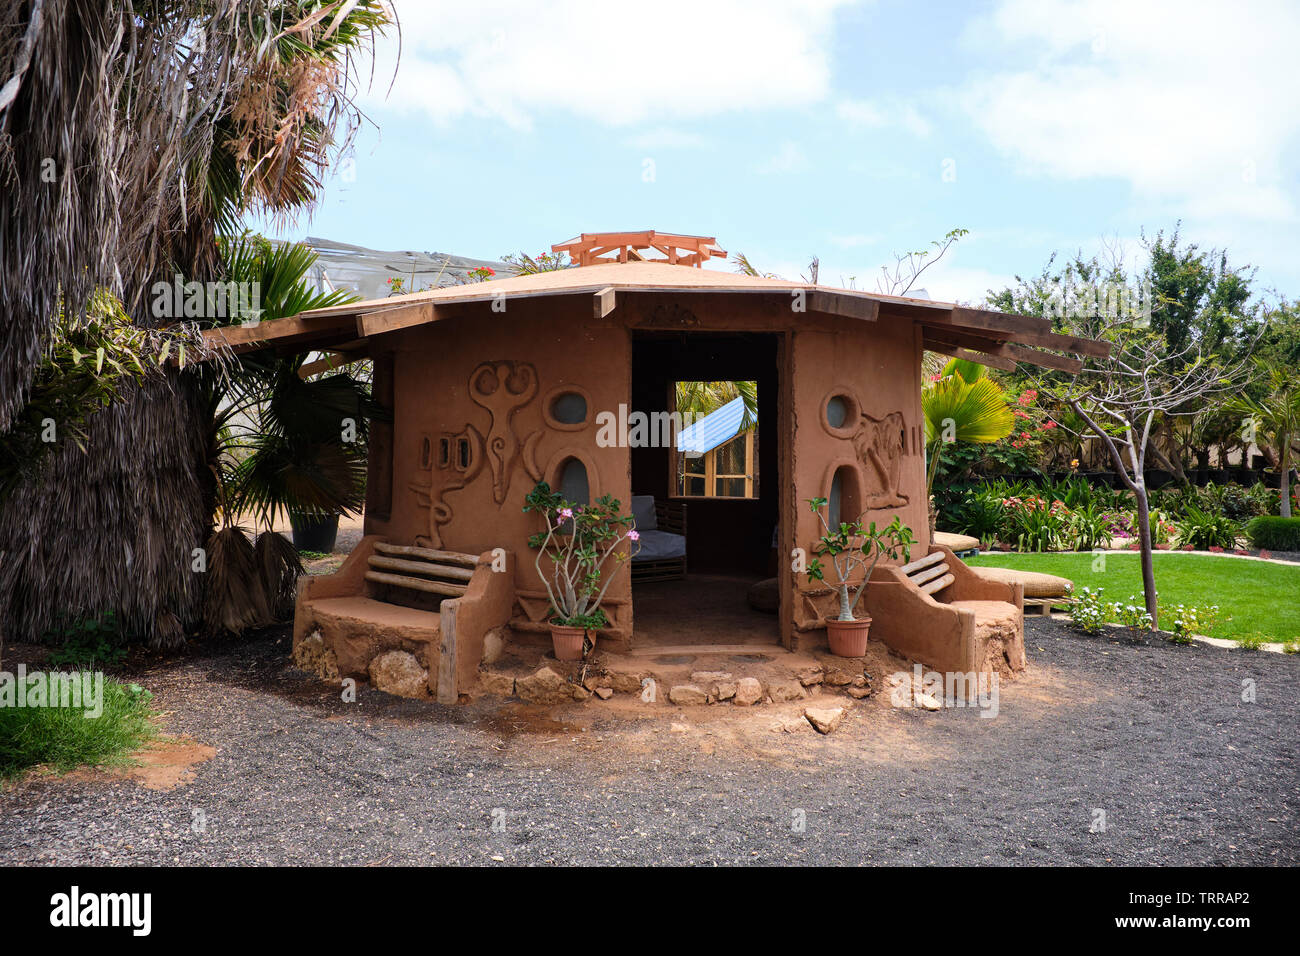 Traditional Cob House Or Casa De Barro Inside The Viveiro Botanical Gardens, Sal Island, Cape Verde, Africa - Stock Image